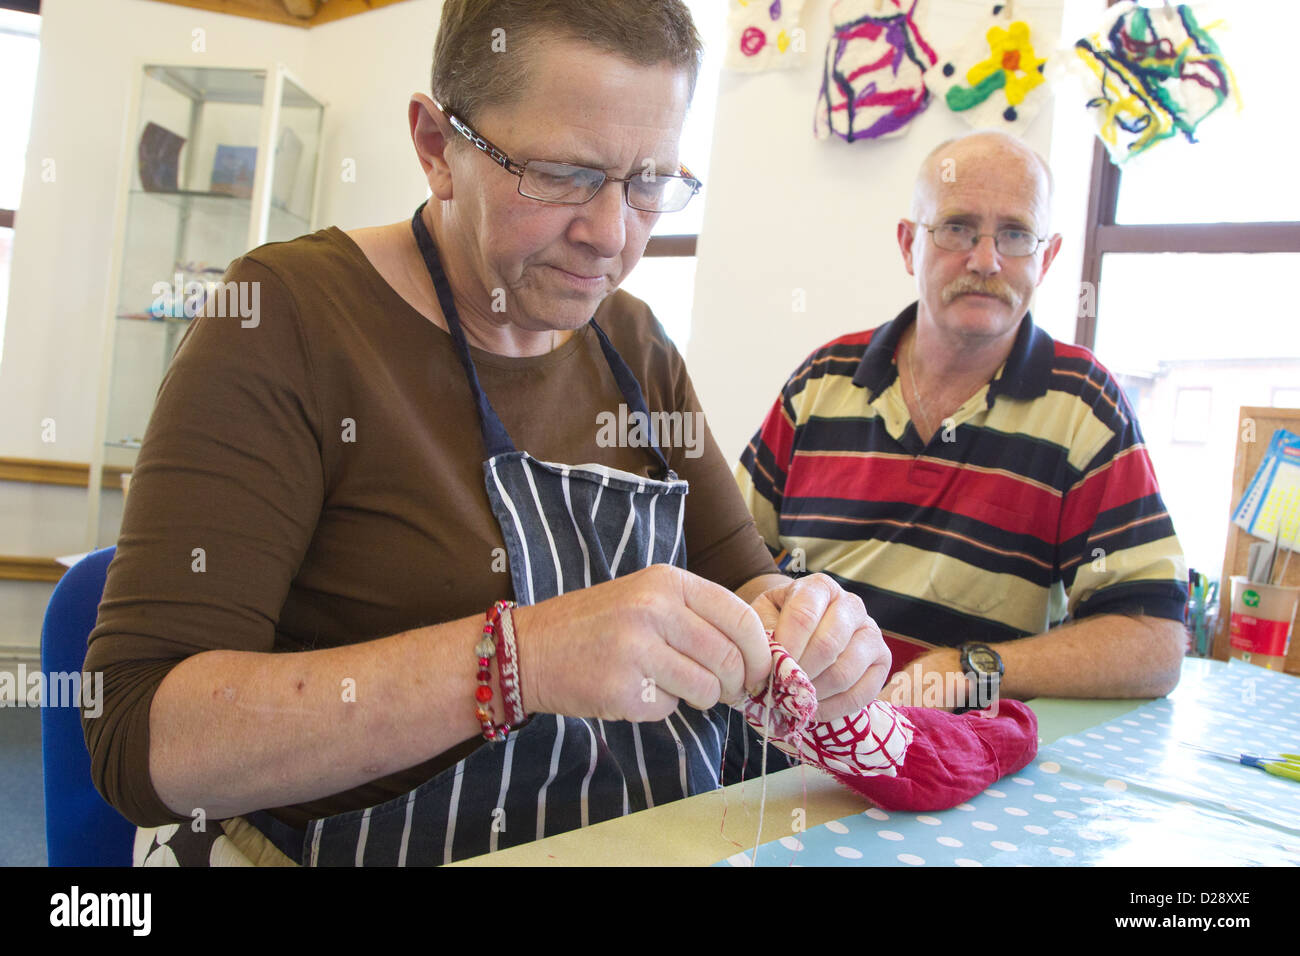 Felt making class for people with a visual impairment - untying felt from a roll. - Stock Image